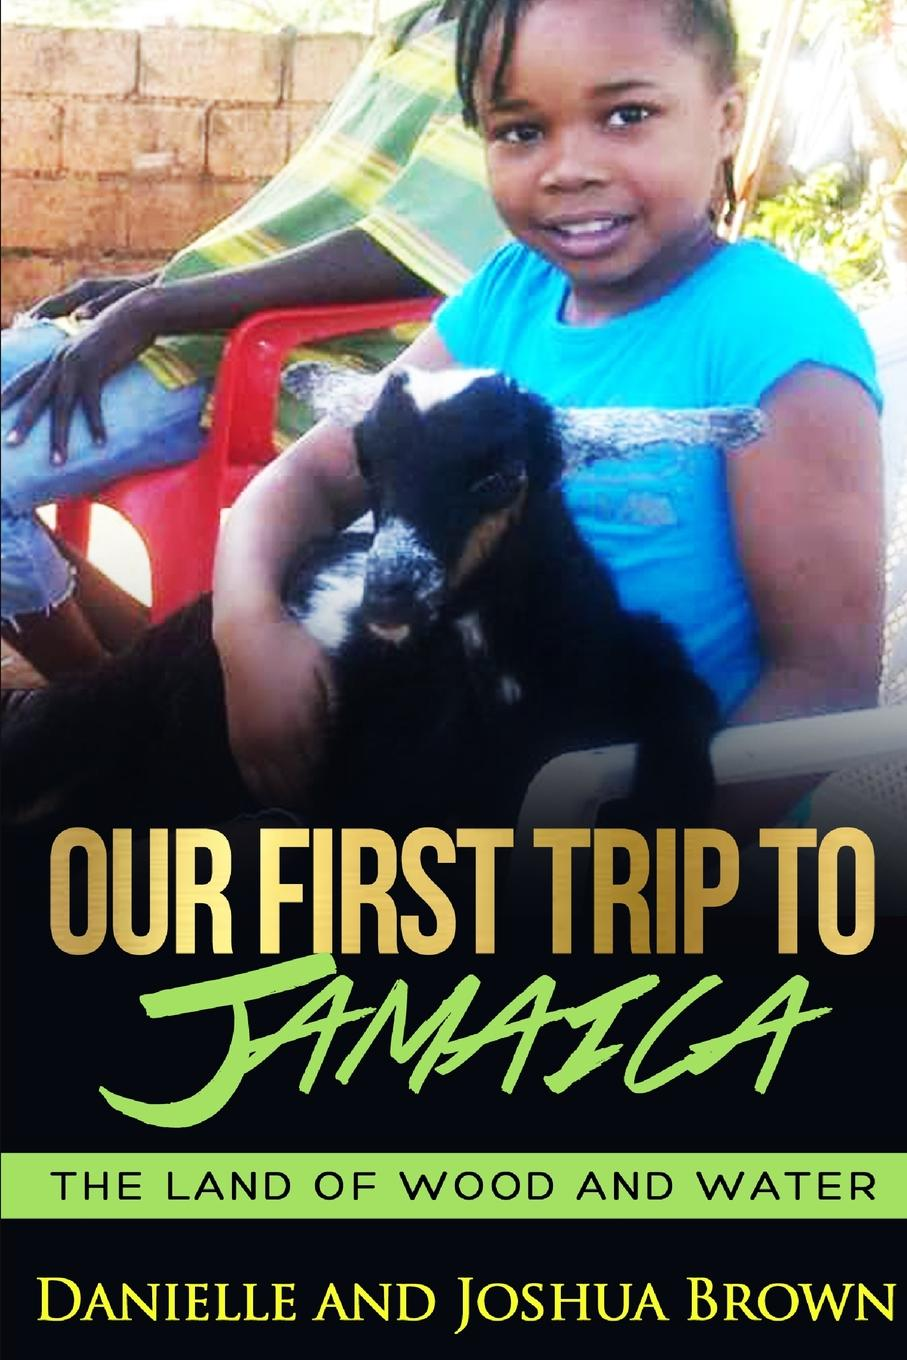 Danielle Brown, Joshua Brown Our First Trip To Jamaica - land of wood and water our first book